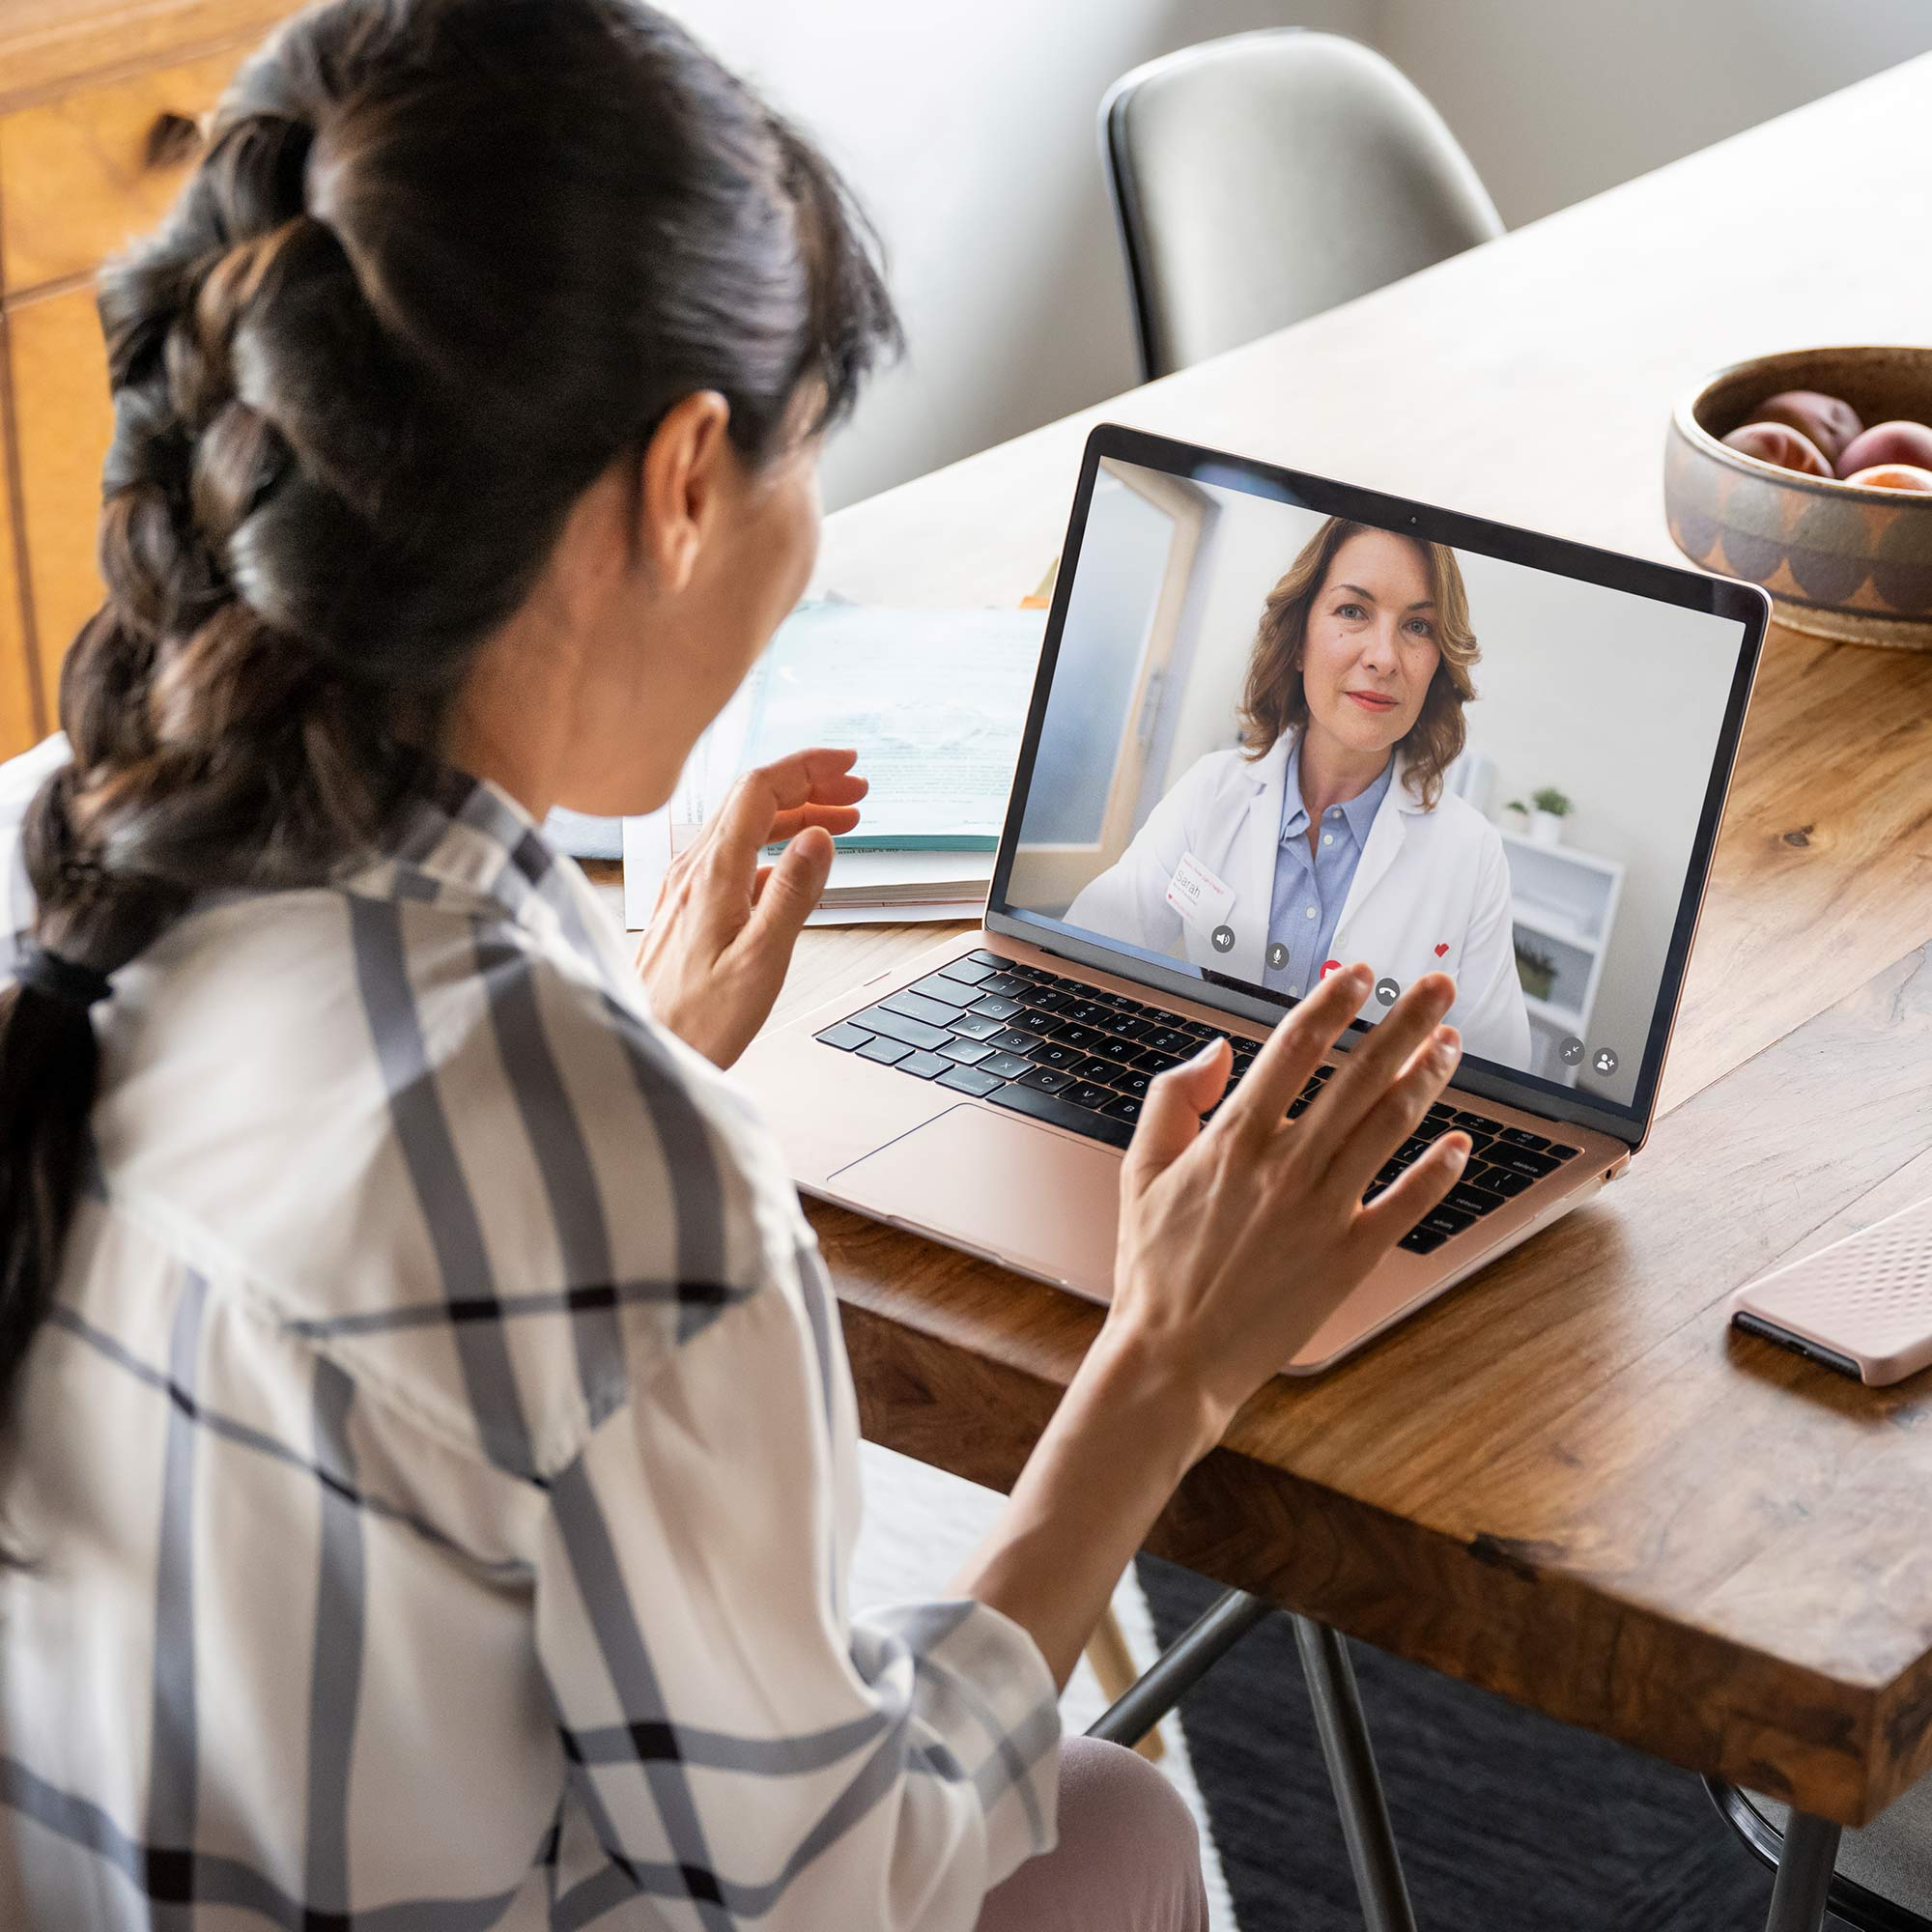 A woman seated at her dining room table video chats with her doctor on her laptop.